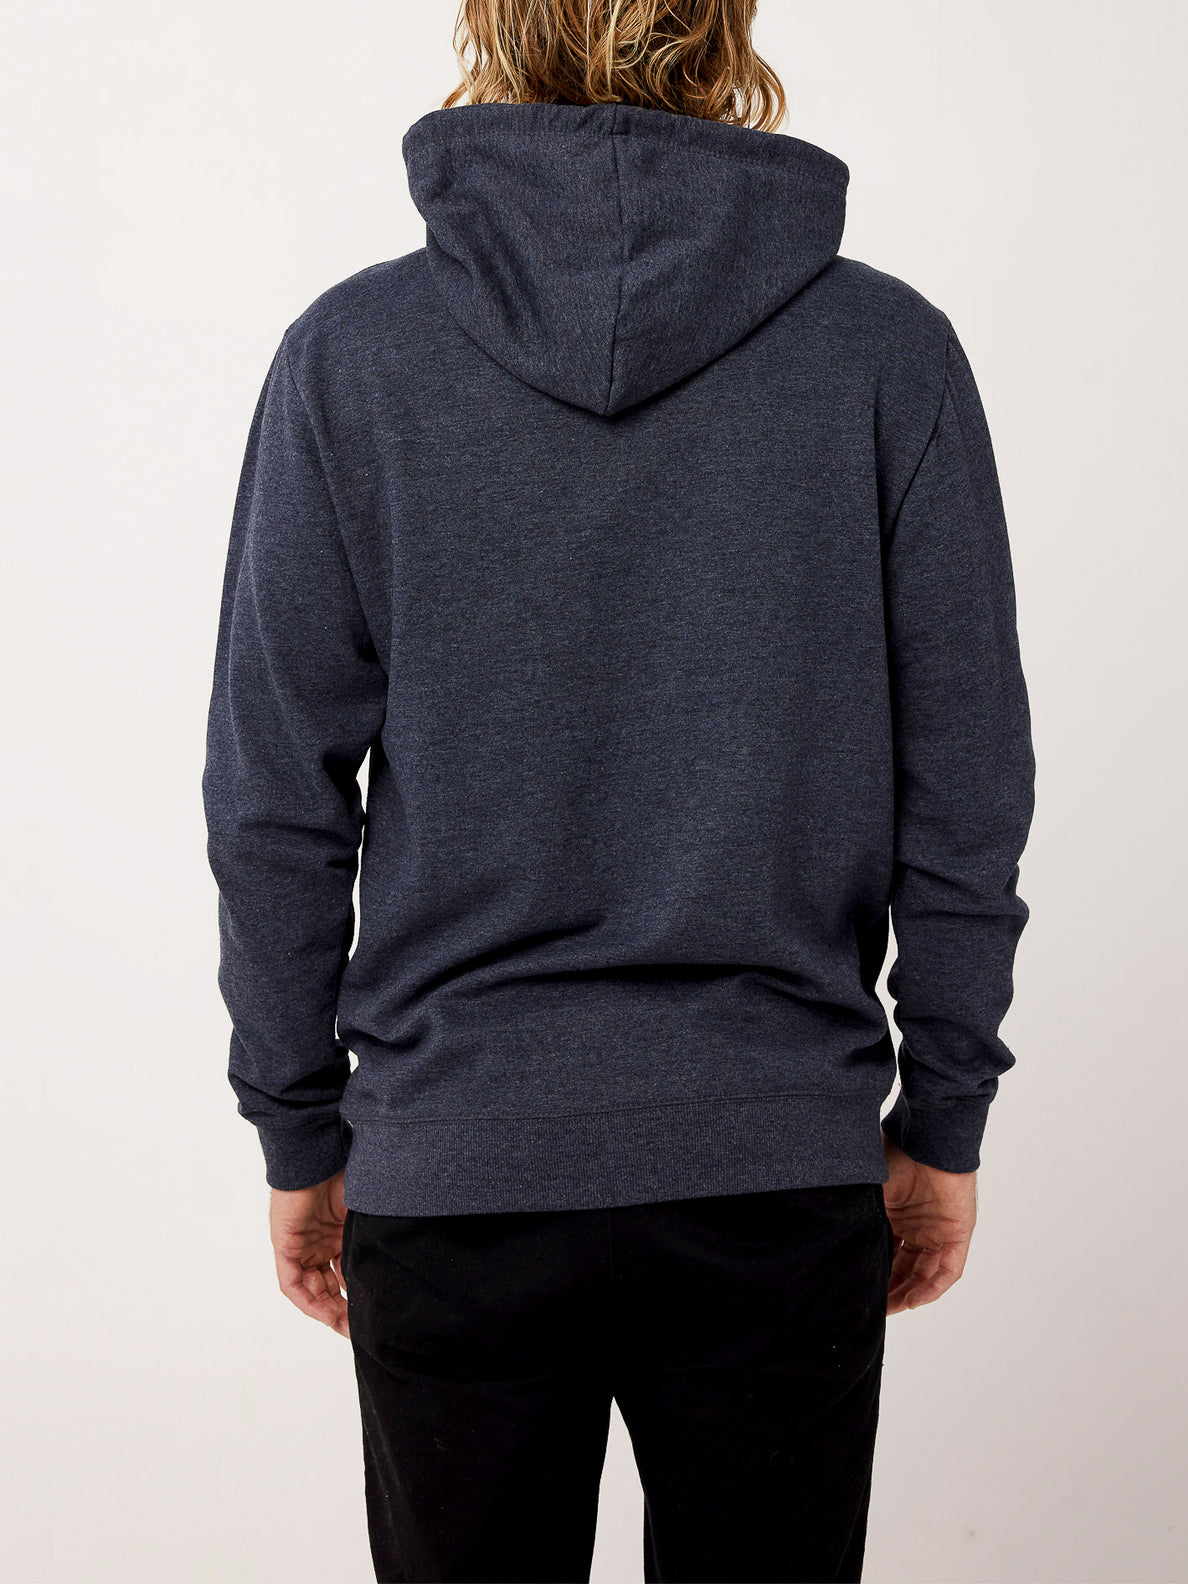 Brass Tacks 1.5 Pullover Fleece - Dark Navy